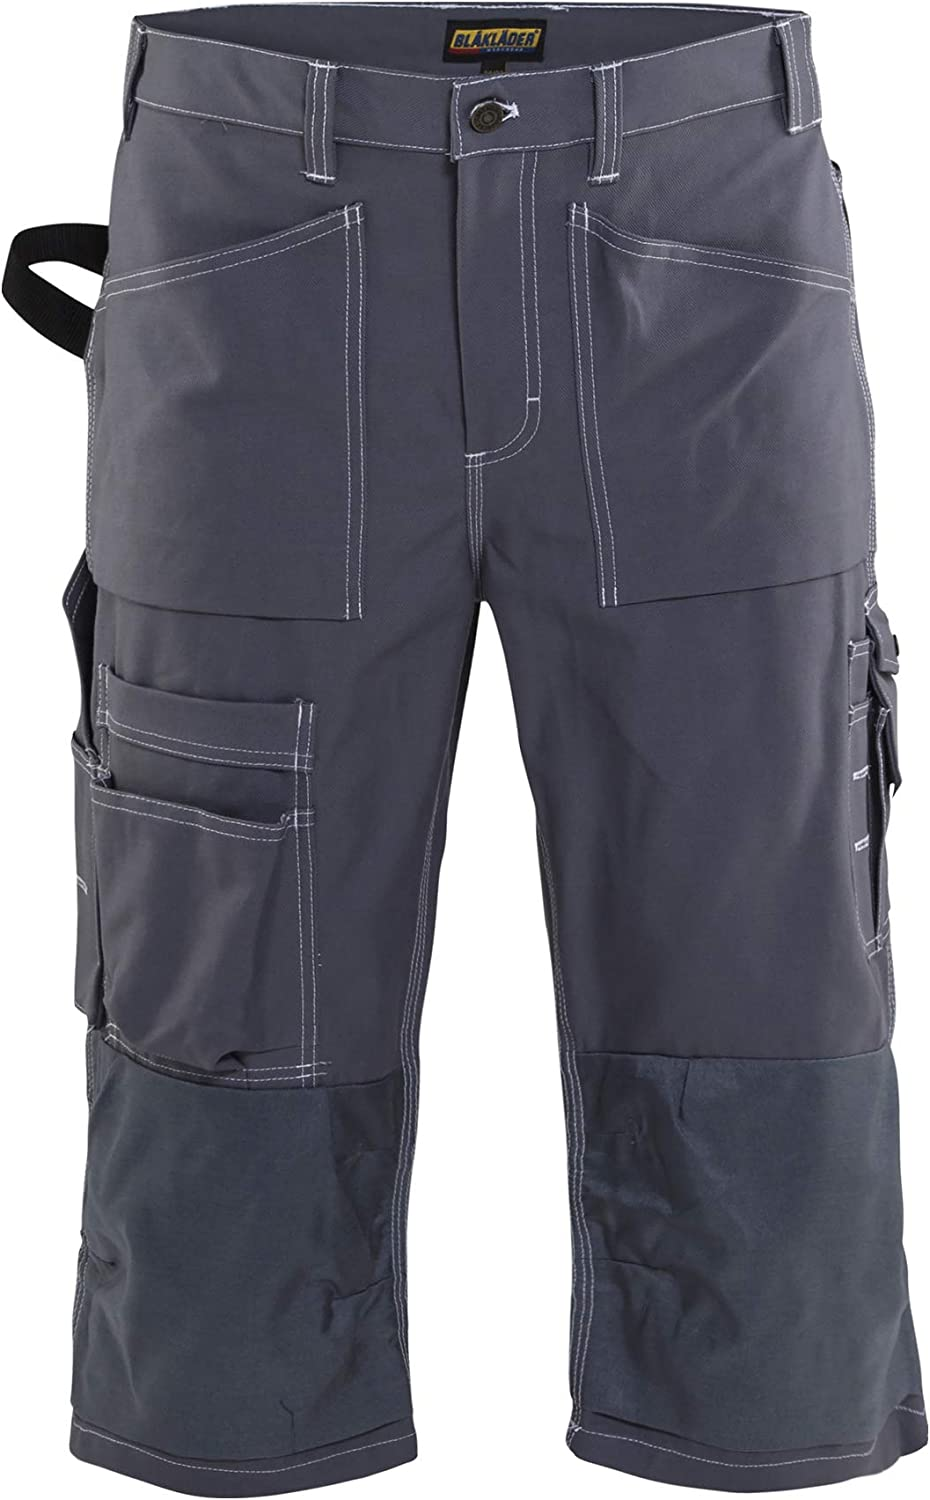 Blaklader Grey Pirate Floorlayer Pants 160613709400